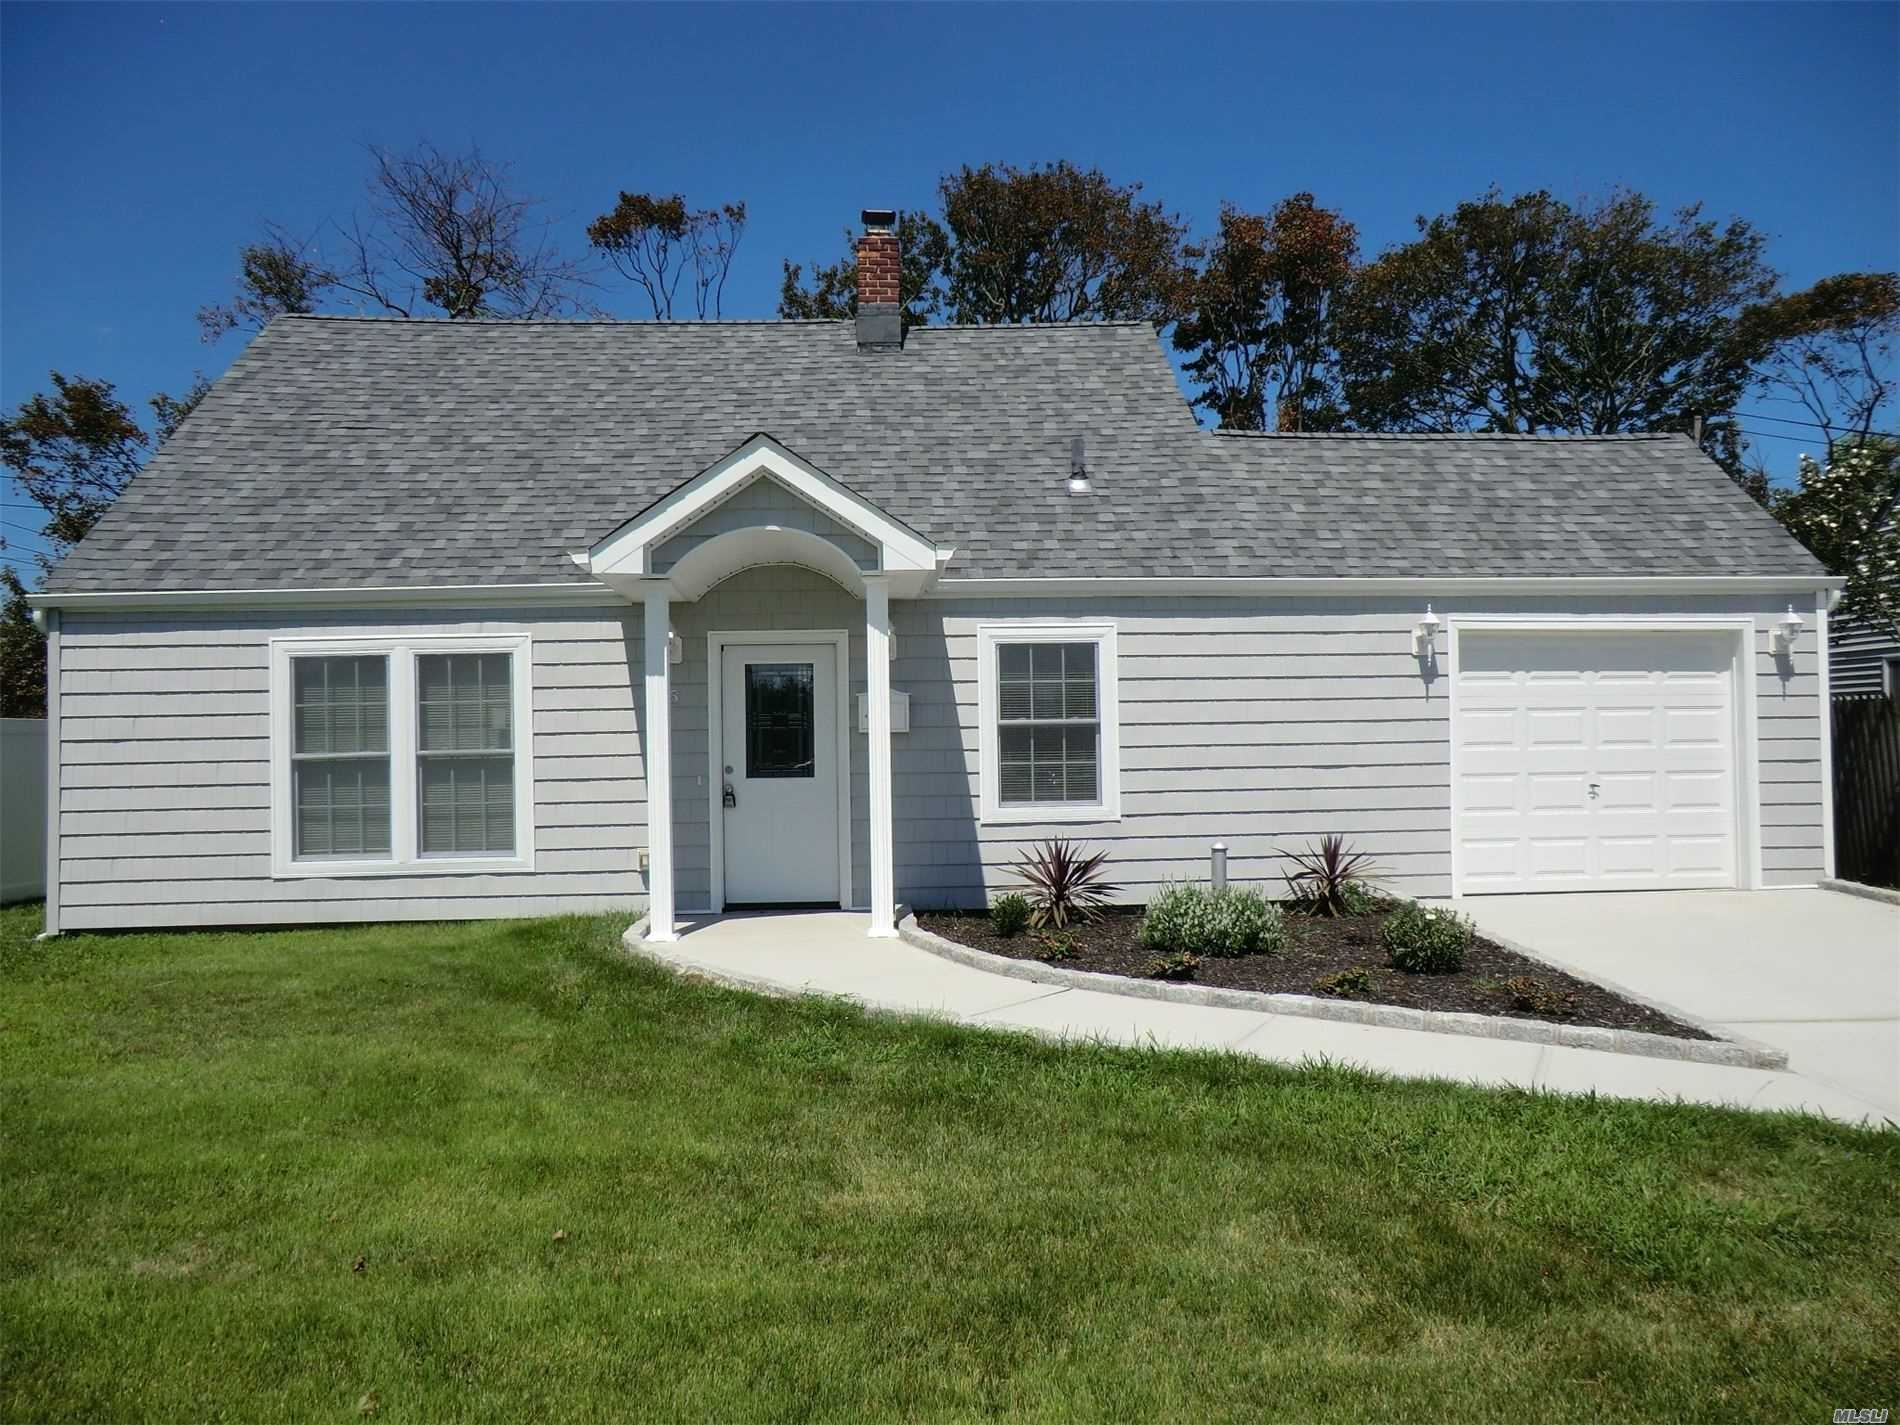 25 Cliff, Levittown, NY 11756 - MLS#: 3244659